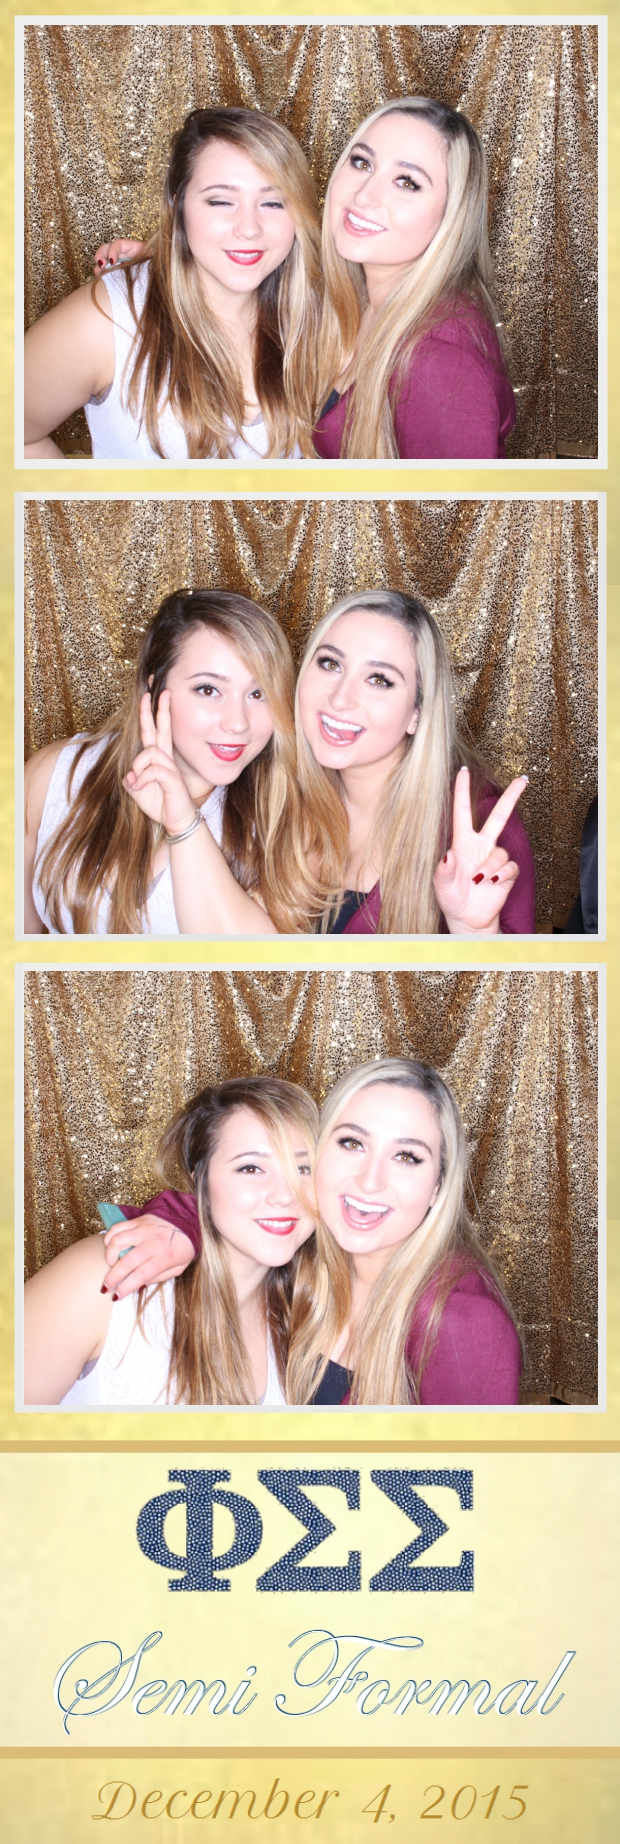 Guest House Events Photo Booth Phi Sigma Sigma Semi Formal (38).jpg